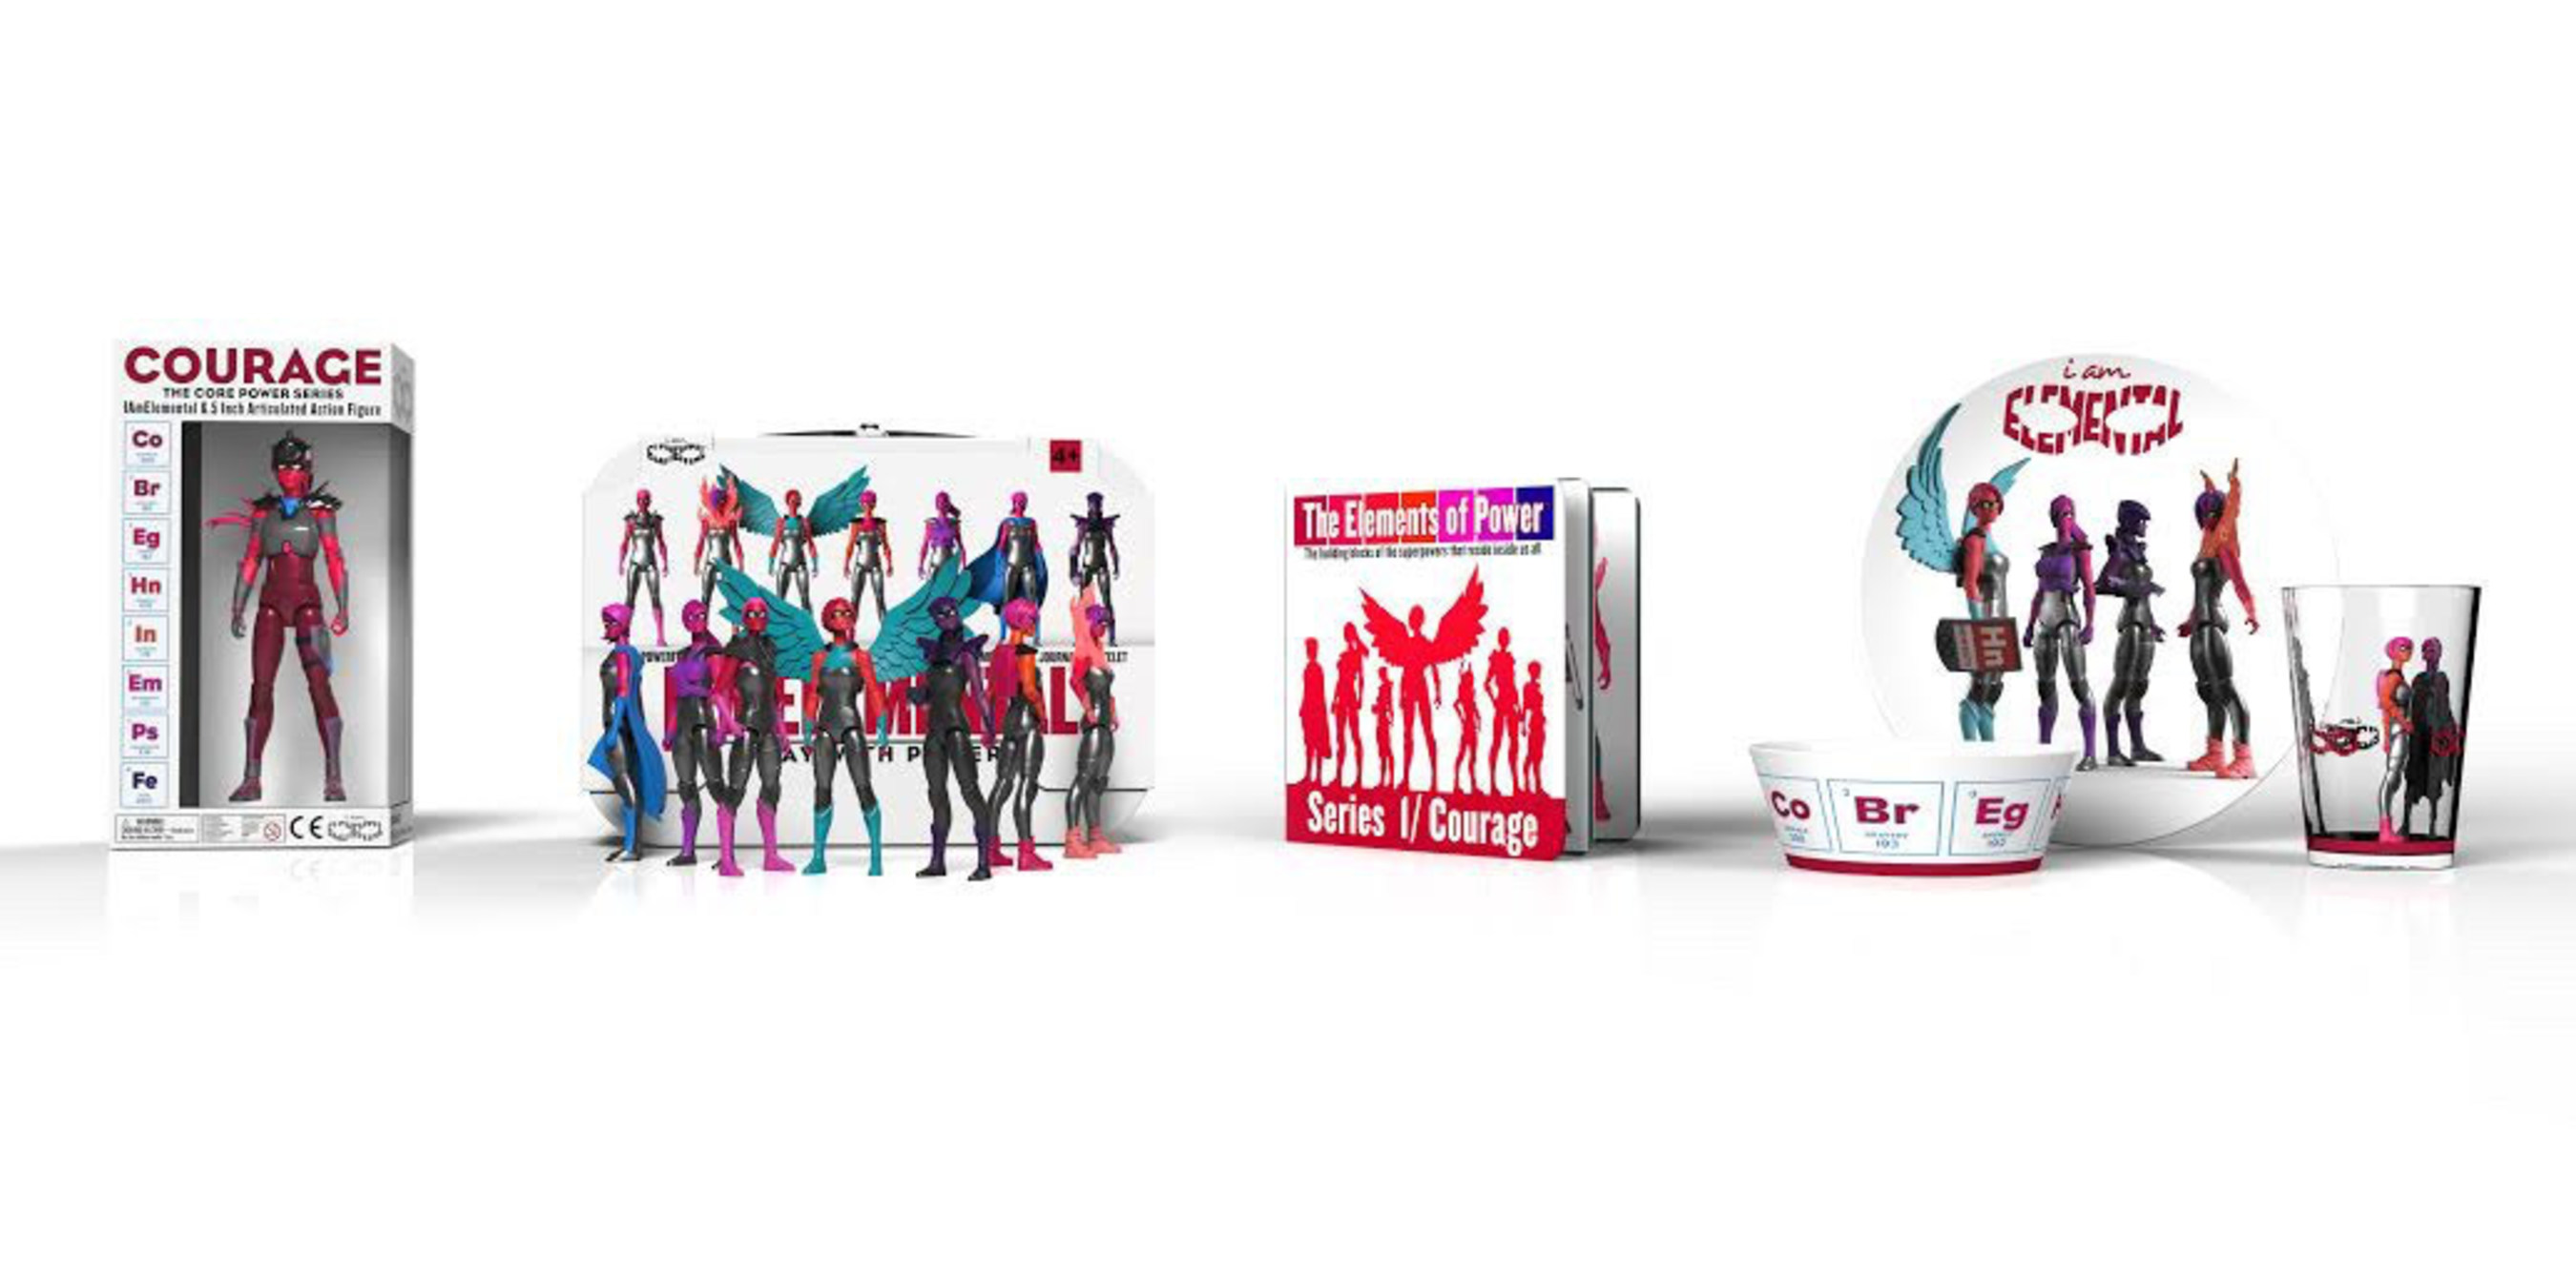 """IAmElemental's product line includes the Courage Core Power Figure, seven Series 1/Courage Female Action Figures, """"The Elements of Power"""" Board Book, and a Three-Piece Tableware Set.  For more information, visit http://www.IAmElemental.com."""